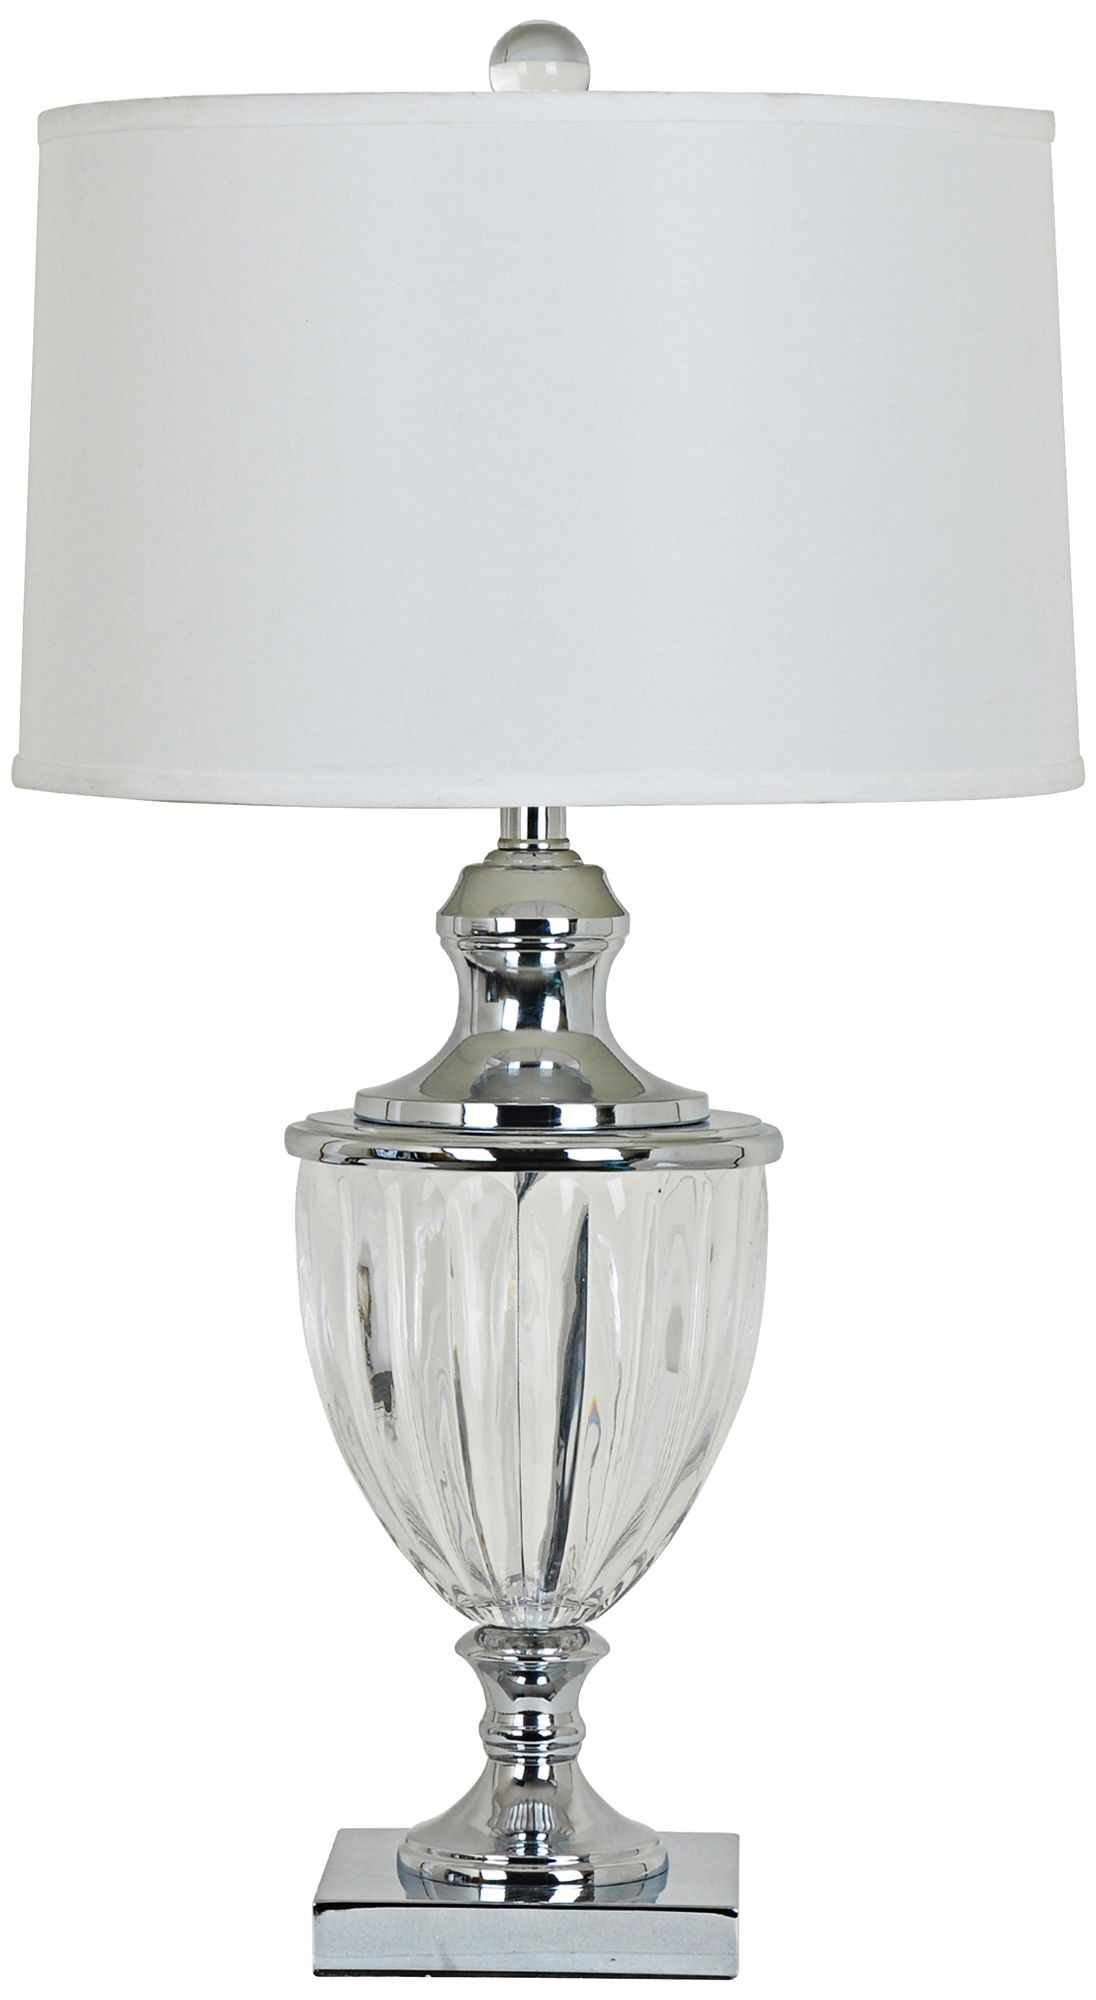 Crestview Collection Carlton Nickel Urn Table Lamp